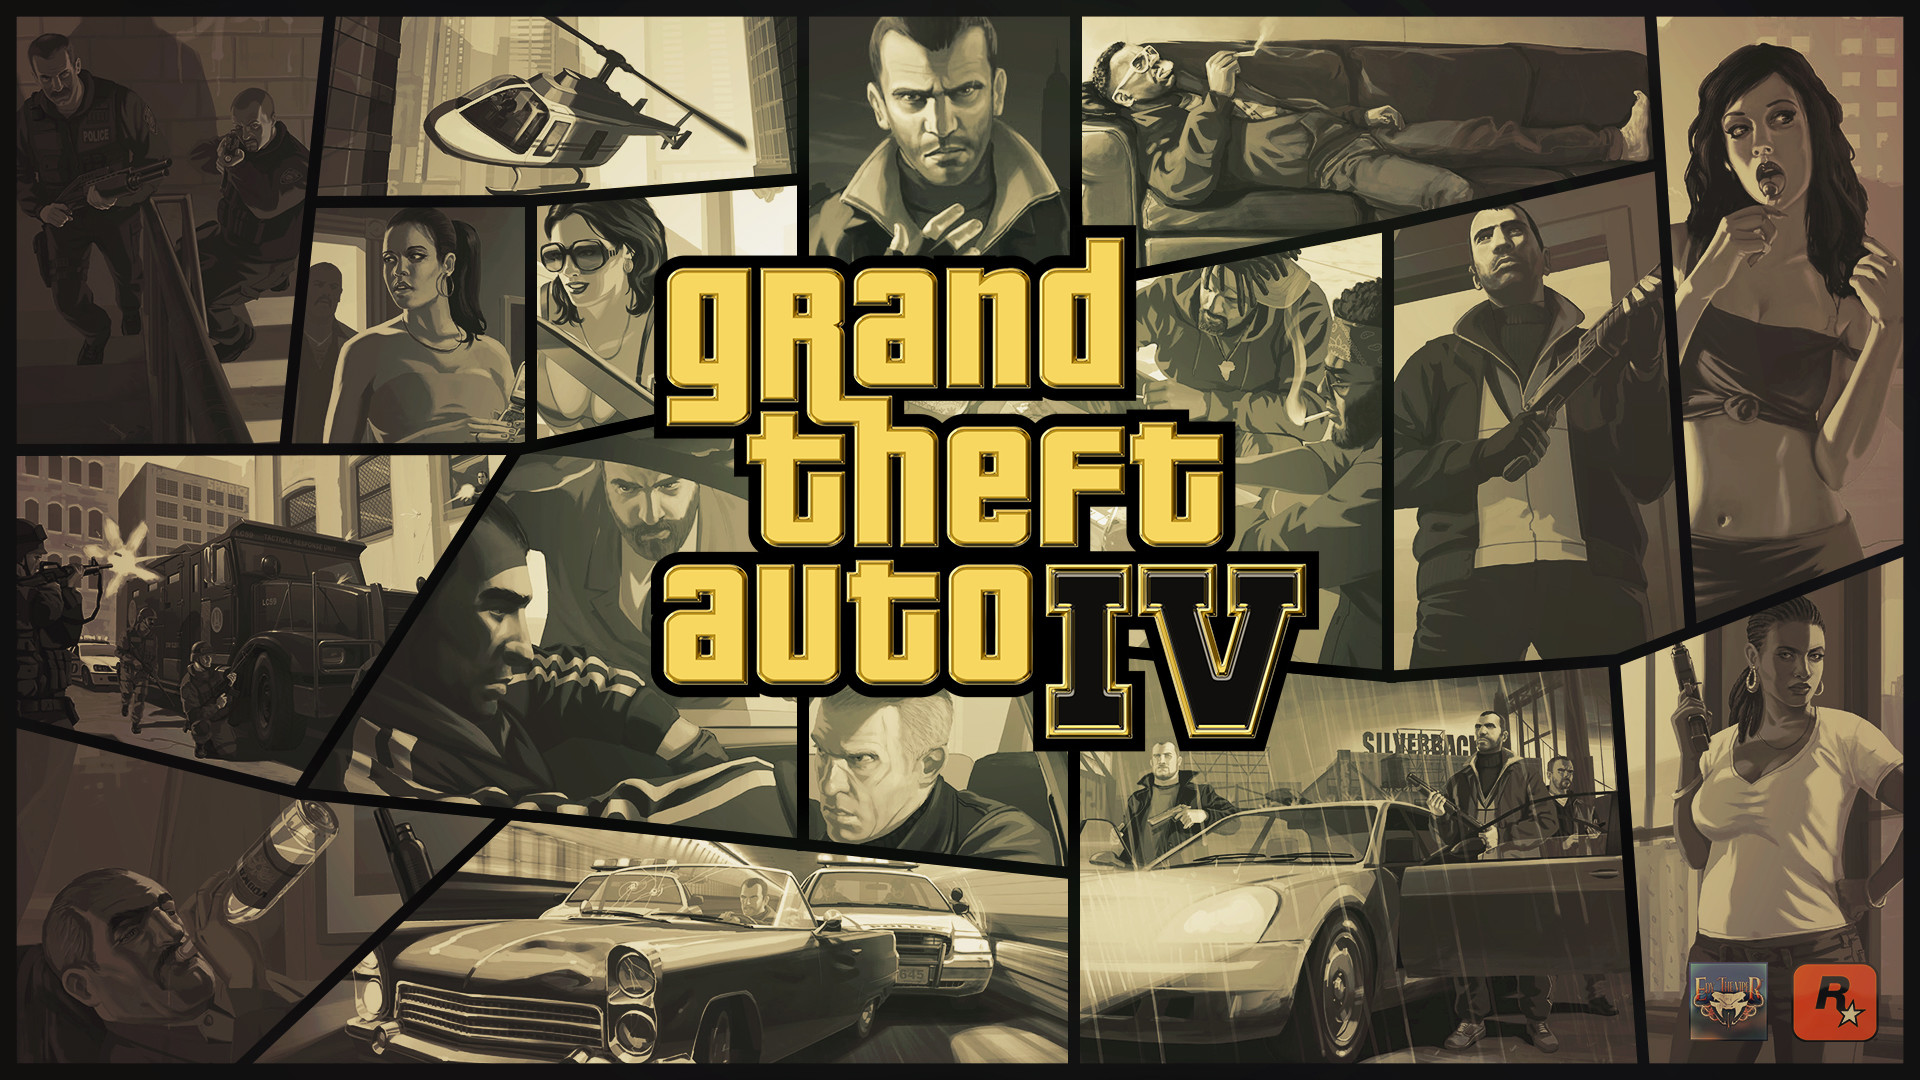 Res: 1920x1080, ... Grand Theft Auto IV Gold Logo Wallpaper by eduard2009